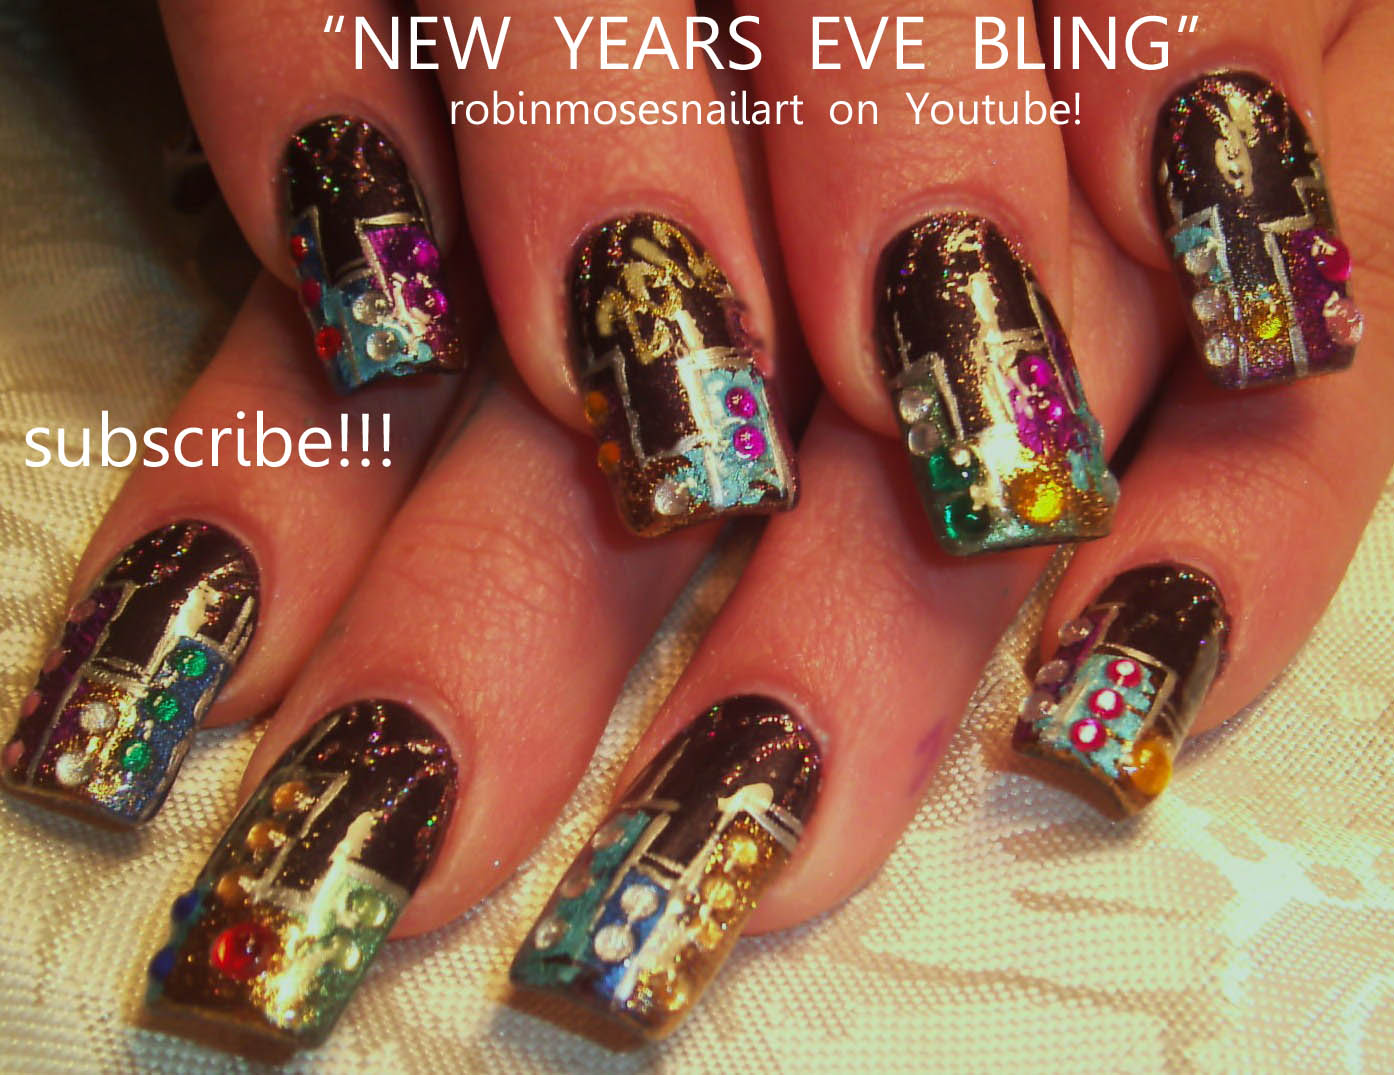 Simple new year nail designs fashionable new years nail art simple new year nail designs robin moses nail art december prinsesfo Image collections